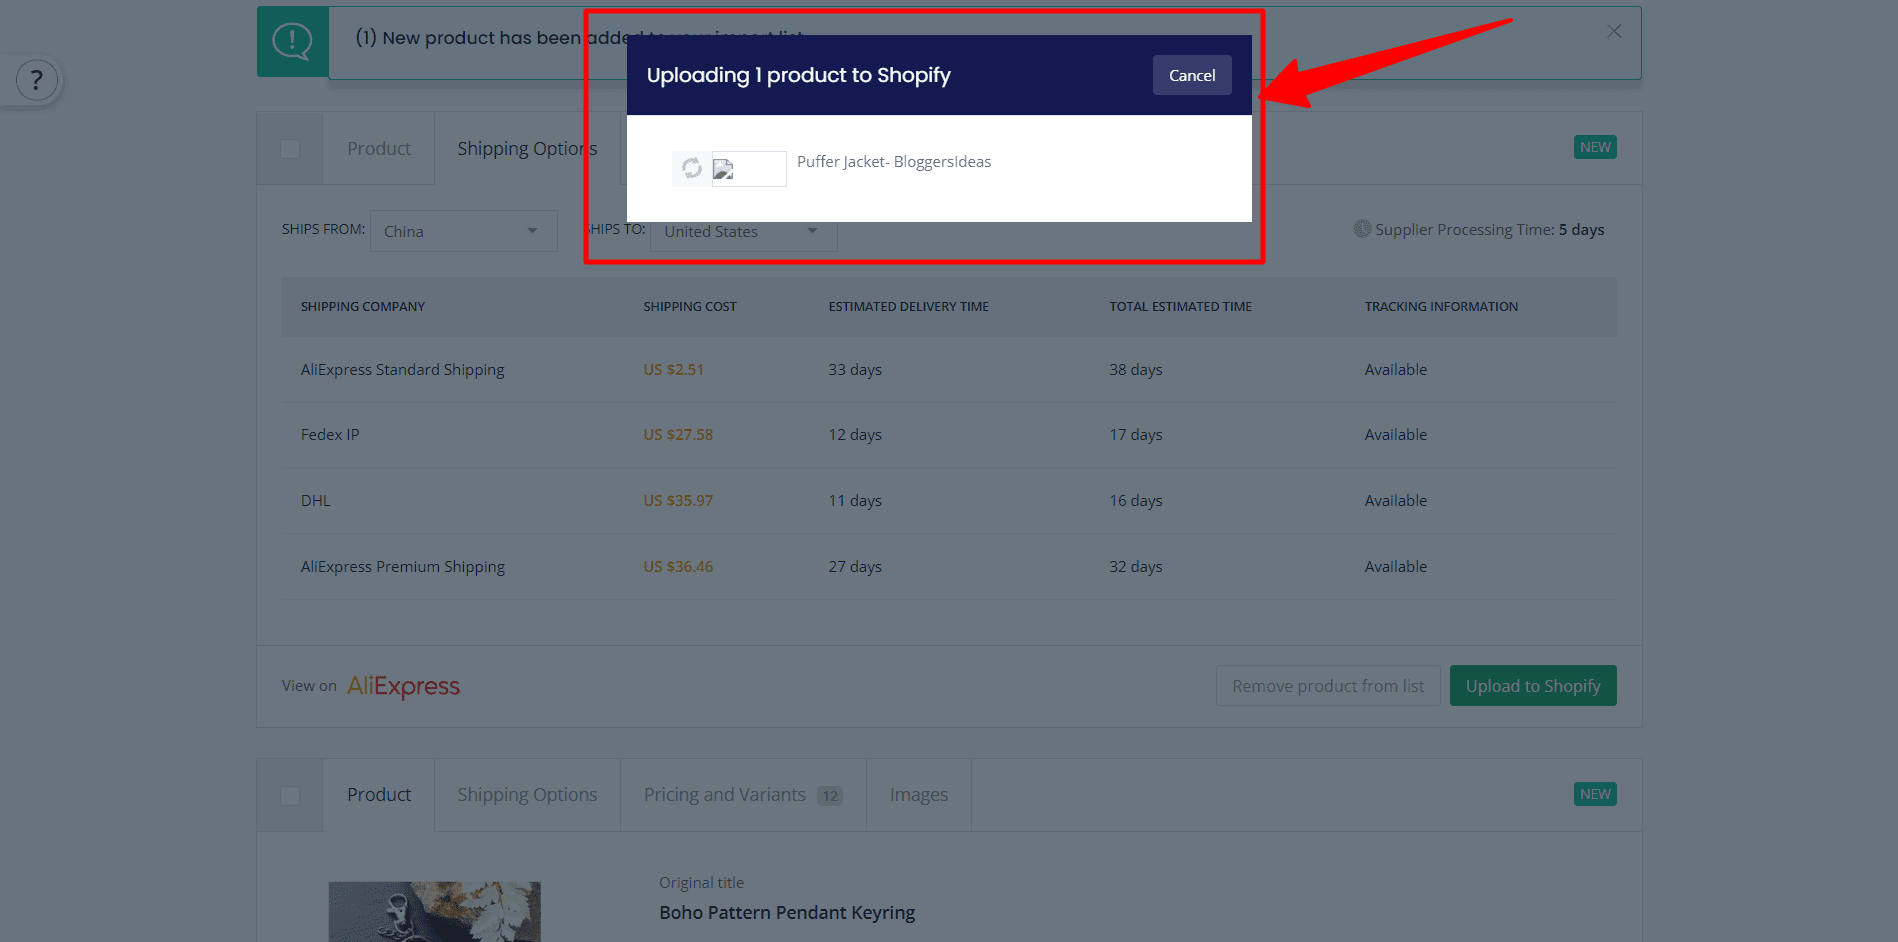 upload products to shopify from salehoo